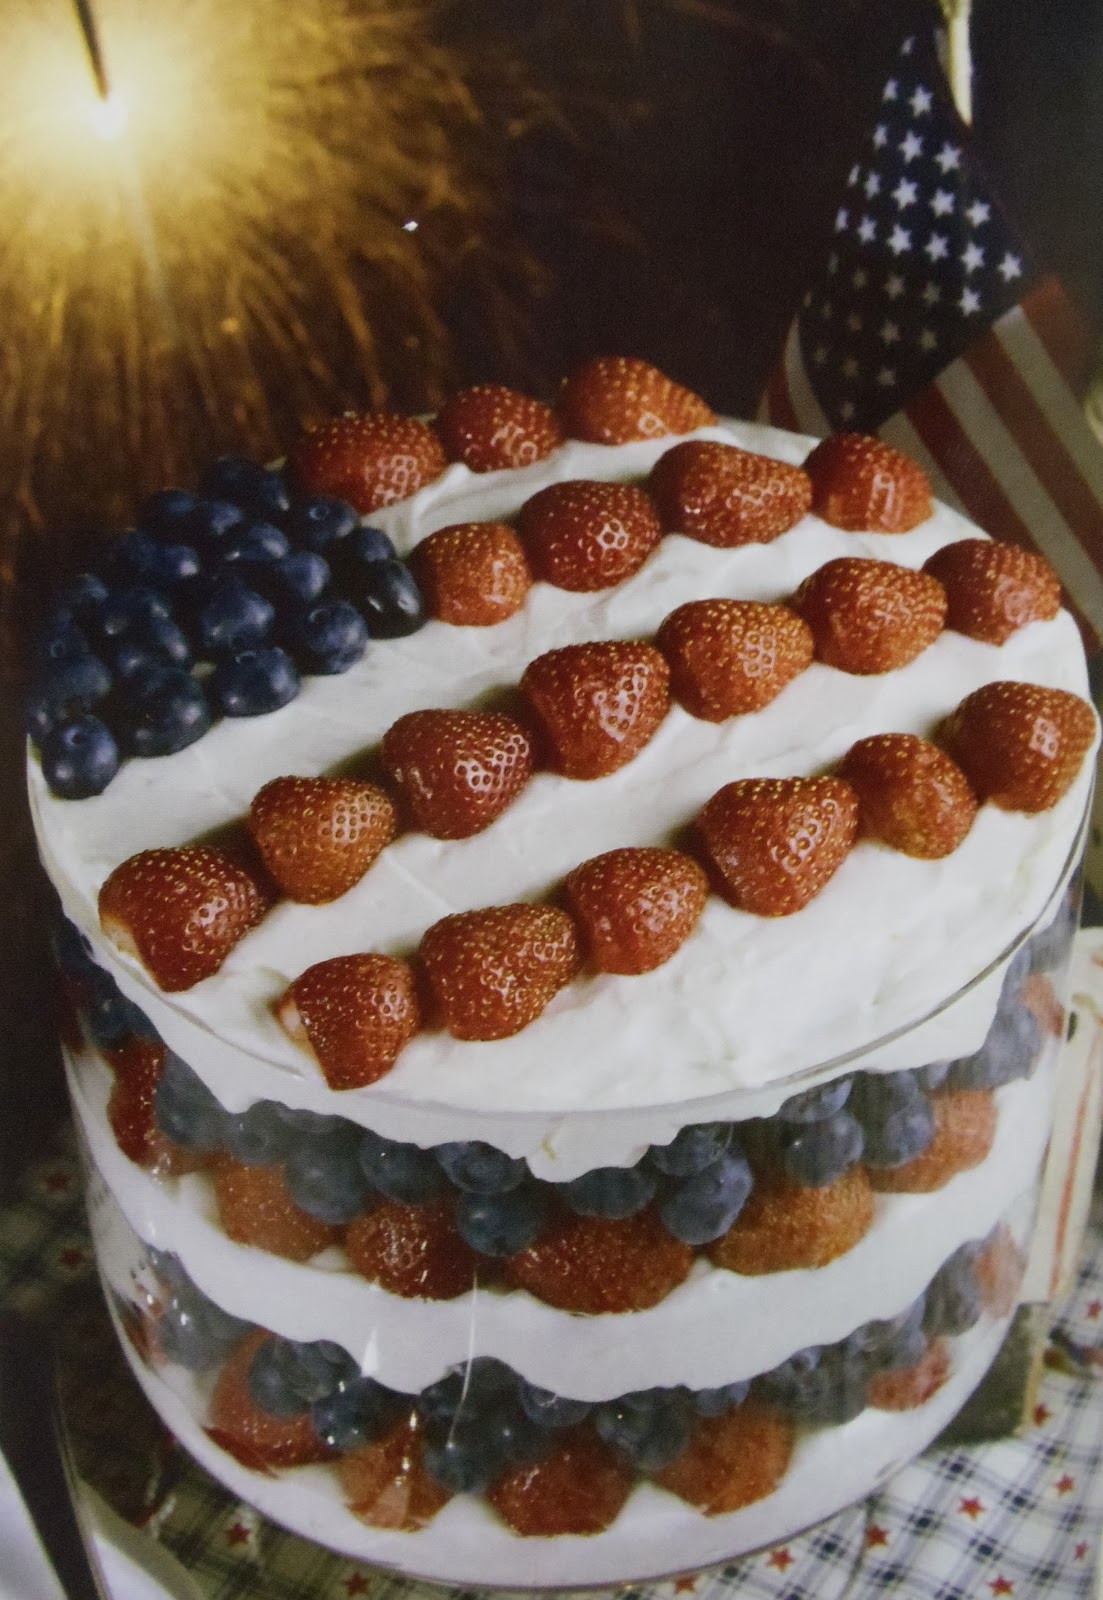 Desserts For Picnic  Everyday Life at Leisure 4th of July Picnic Dessert